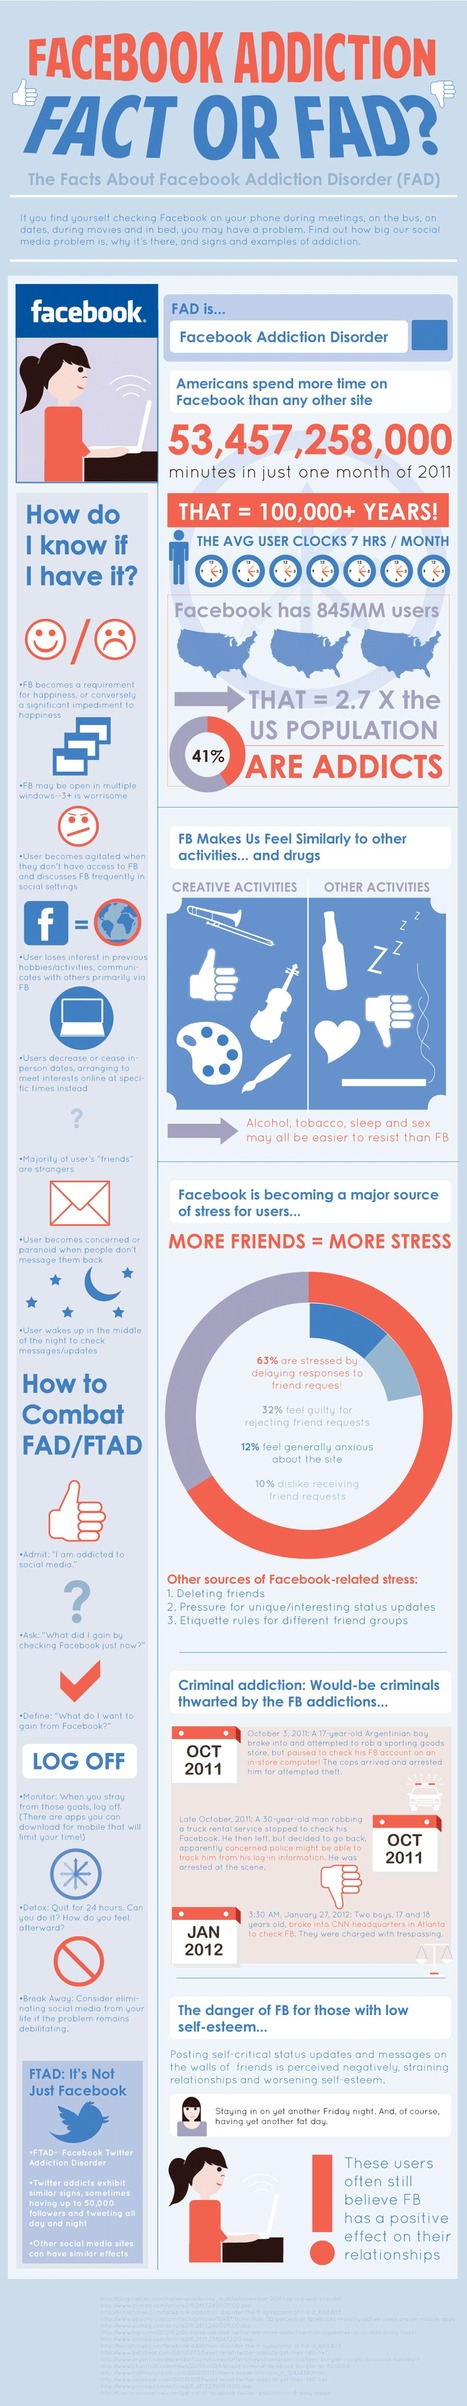 [Infographic] How Bad Is Your Facebook Addiction Disorder? | Temporary holding topic | Scoop.it